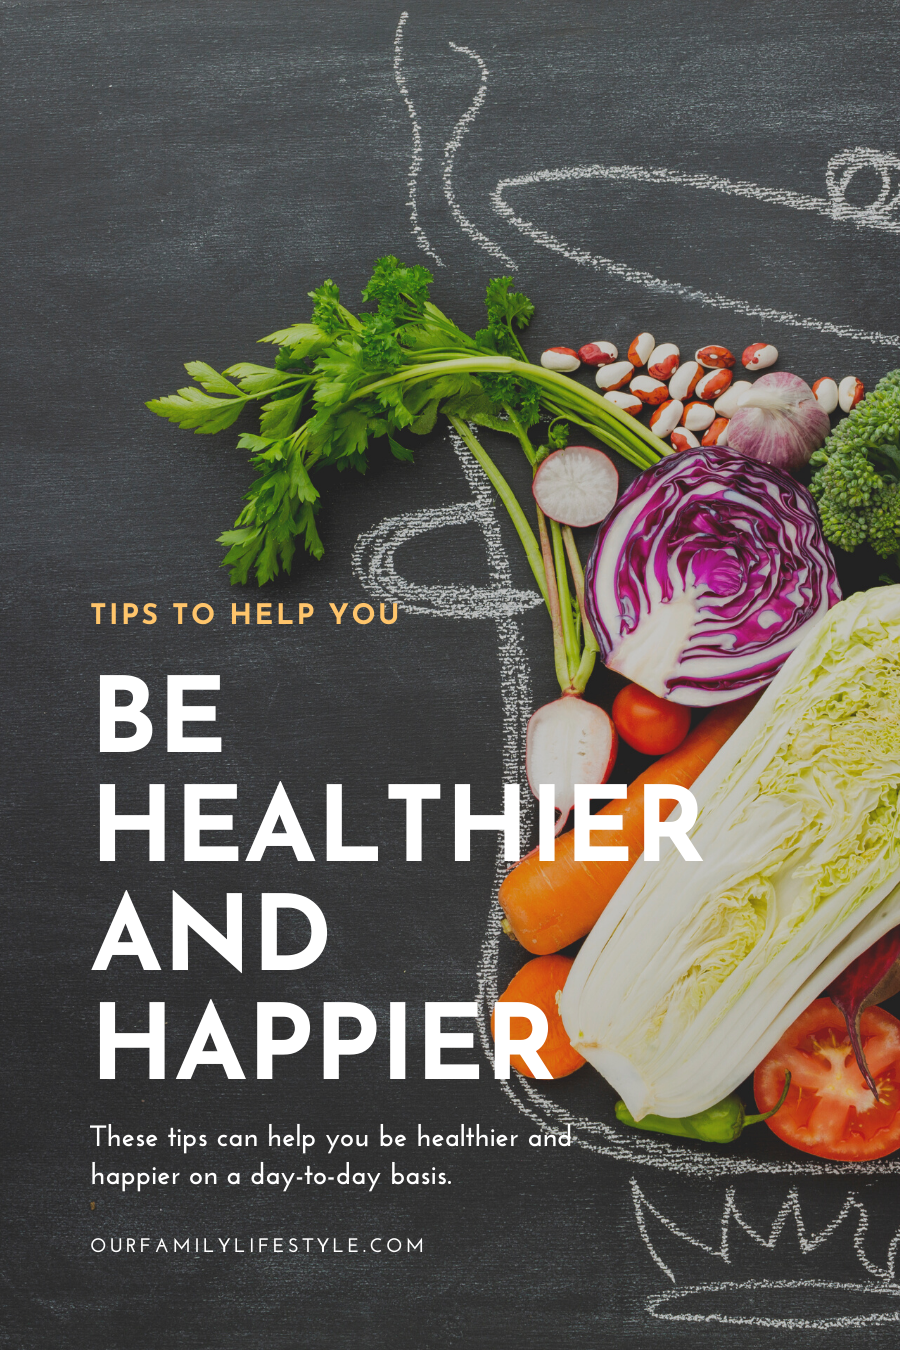 Tips to Help You Be Healthier and Happier